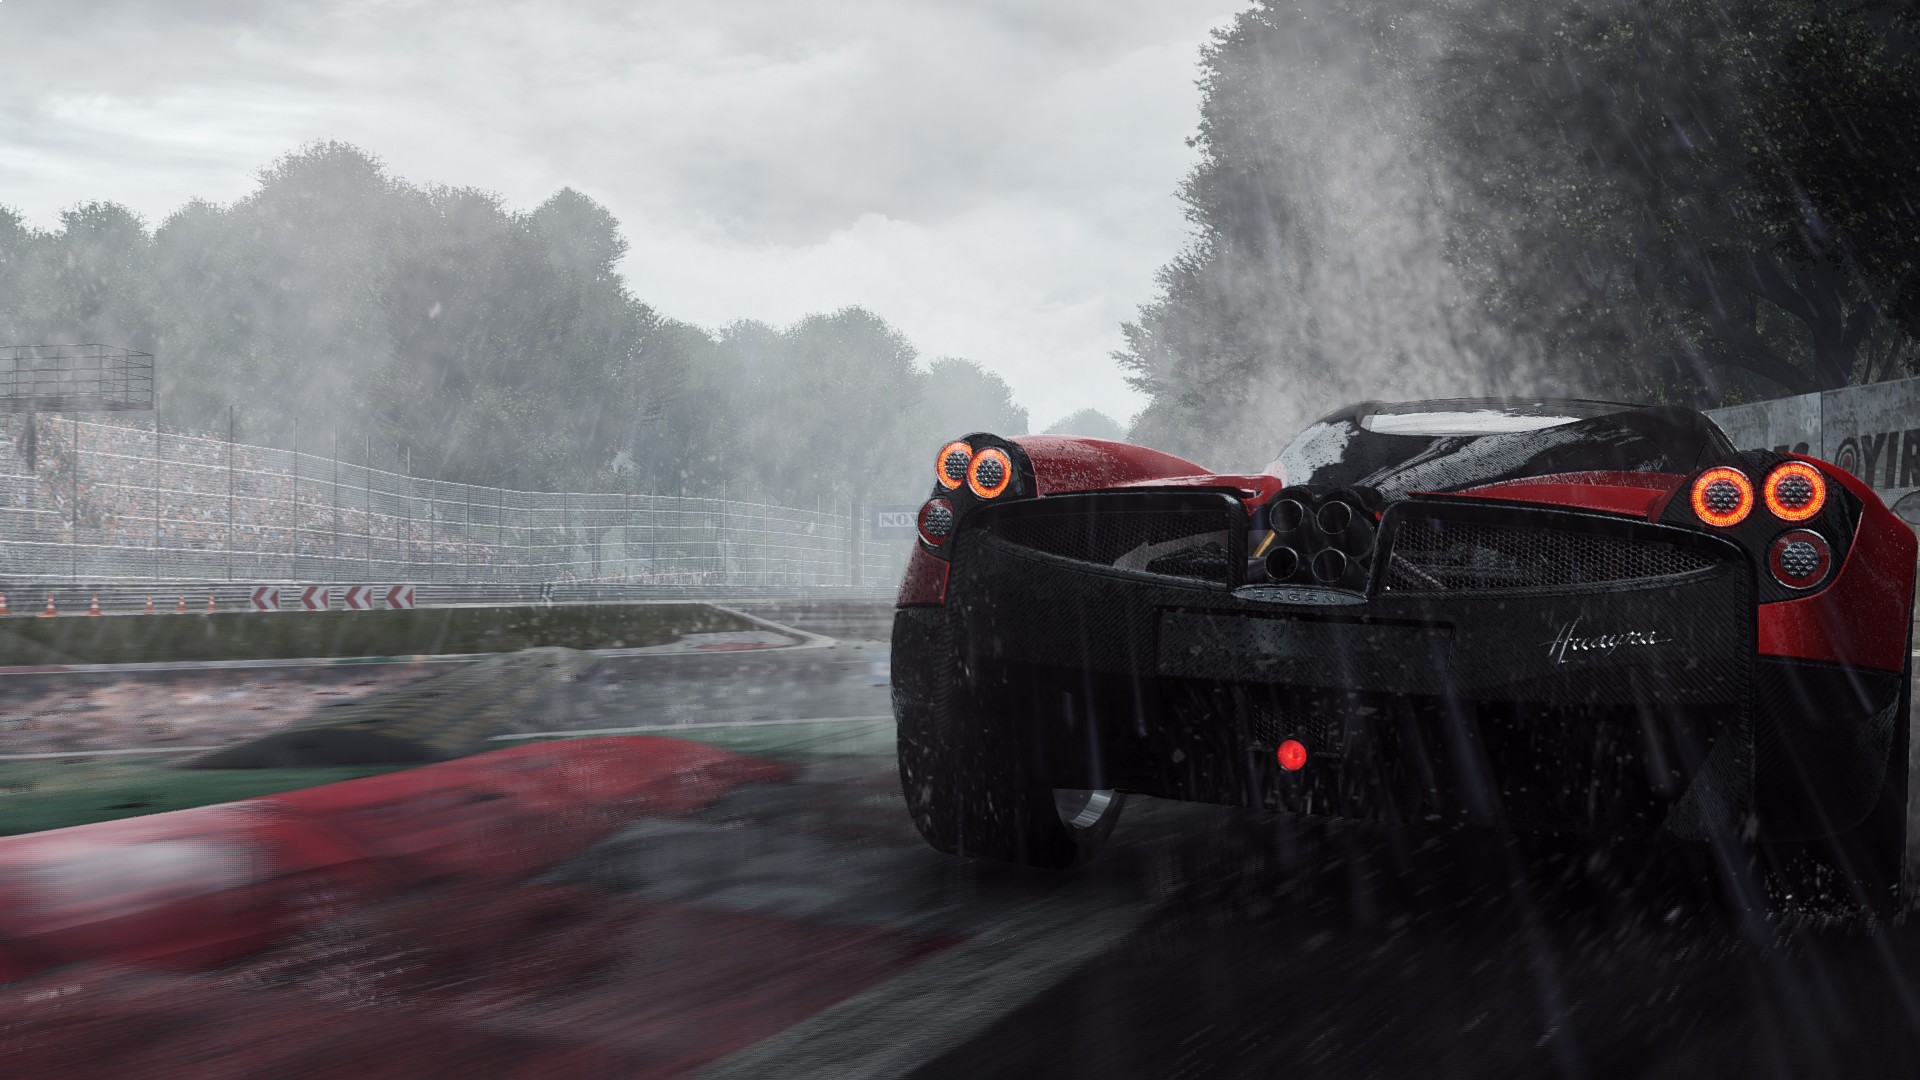 Pagani Ready to Race in Rain - Top 10 HD Raindrop Wallpapers for Your Desktop